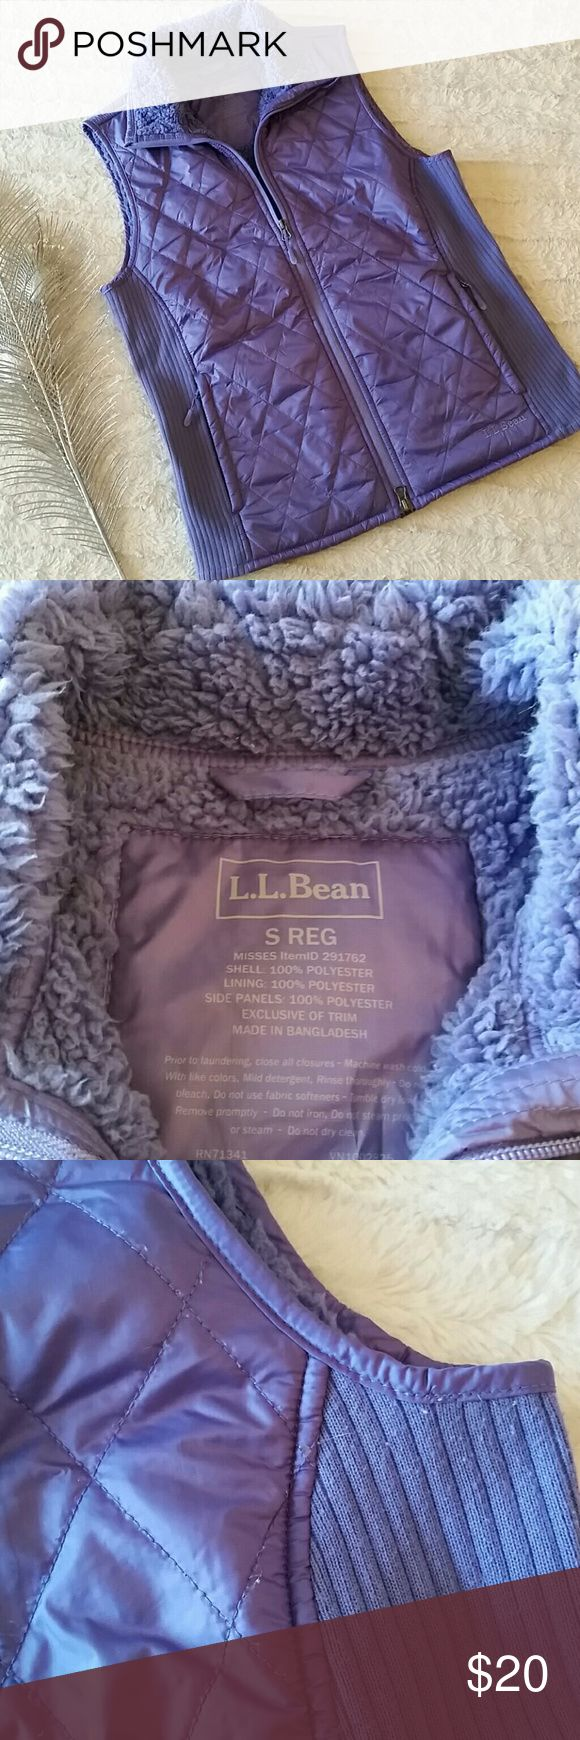 L.L. Bean Purple Zip Up Vest Perfect for the upcoming seasons. Good for everyday or a hike! Quilted front with fleece lining, side pockets. Gently used but still in good shape!   Laying flat measures approximately:  Bust 18.5 inches  Length 24 inches  Open to reasonable offers. Bundle and save! L.L. Bean Jackets & Coats Vests